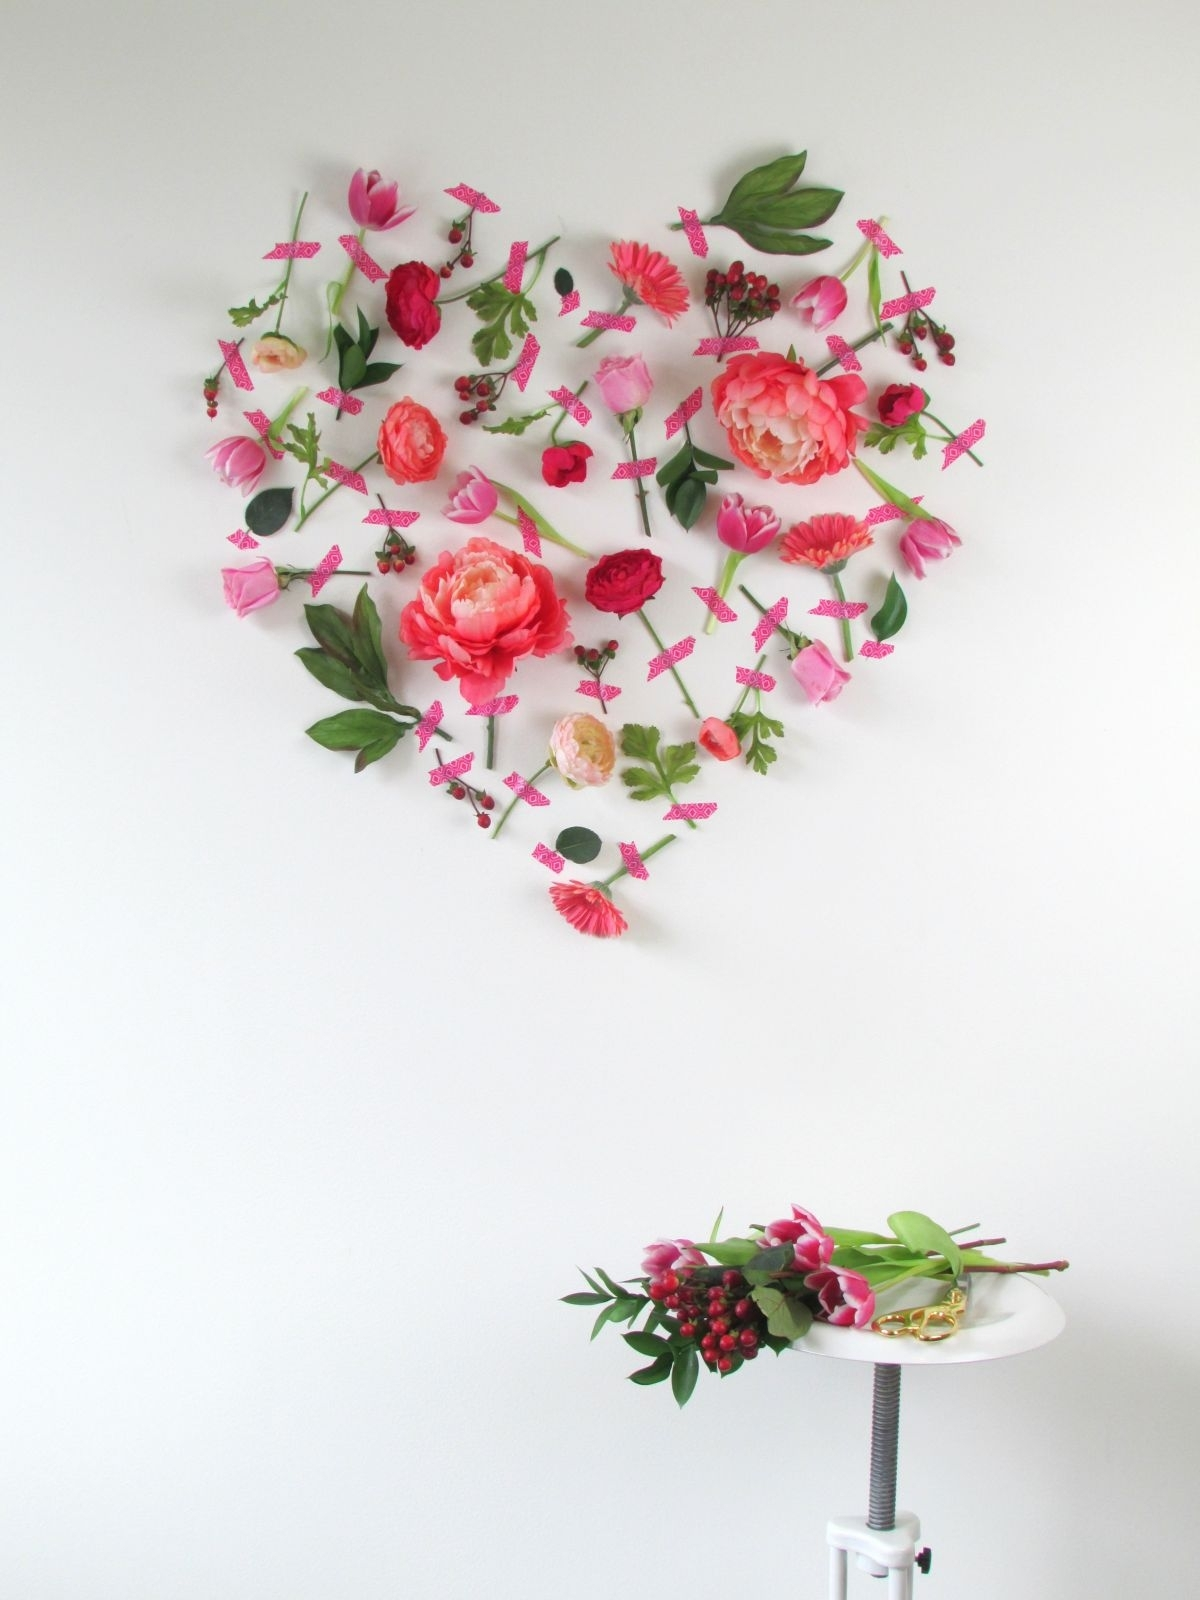 Valentines Day Flower Cool Flower Wall Art – Wall Decoration Ideas Intended For Most Up To Date Floral Wall Art (Gallery 9 of 20)